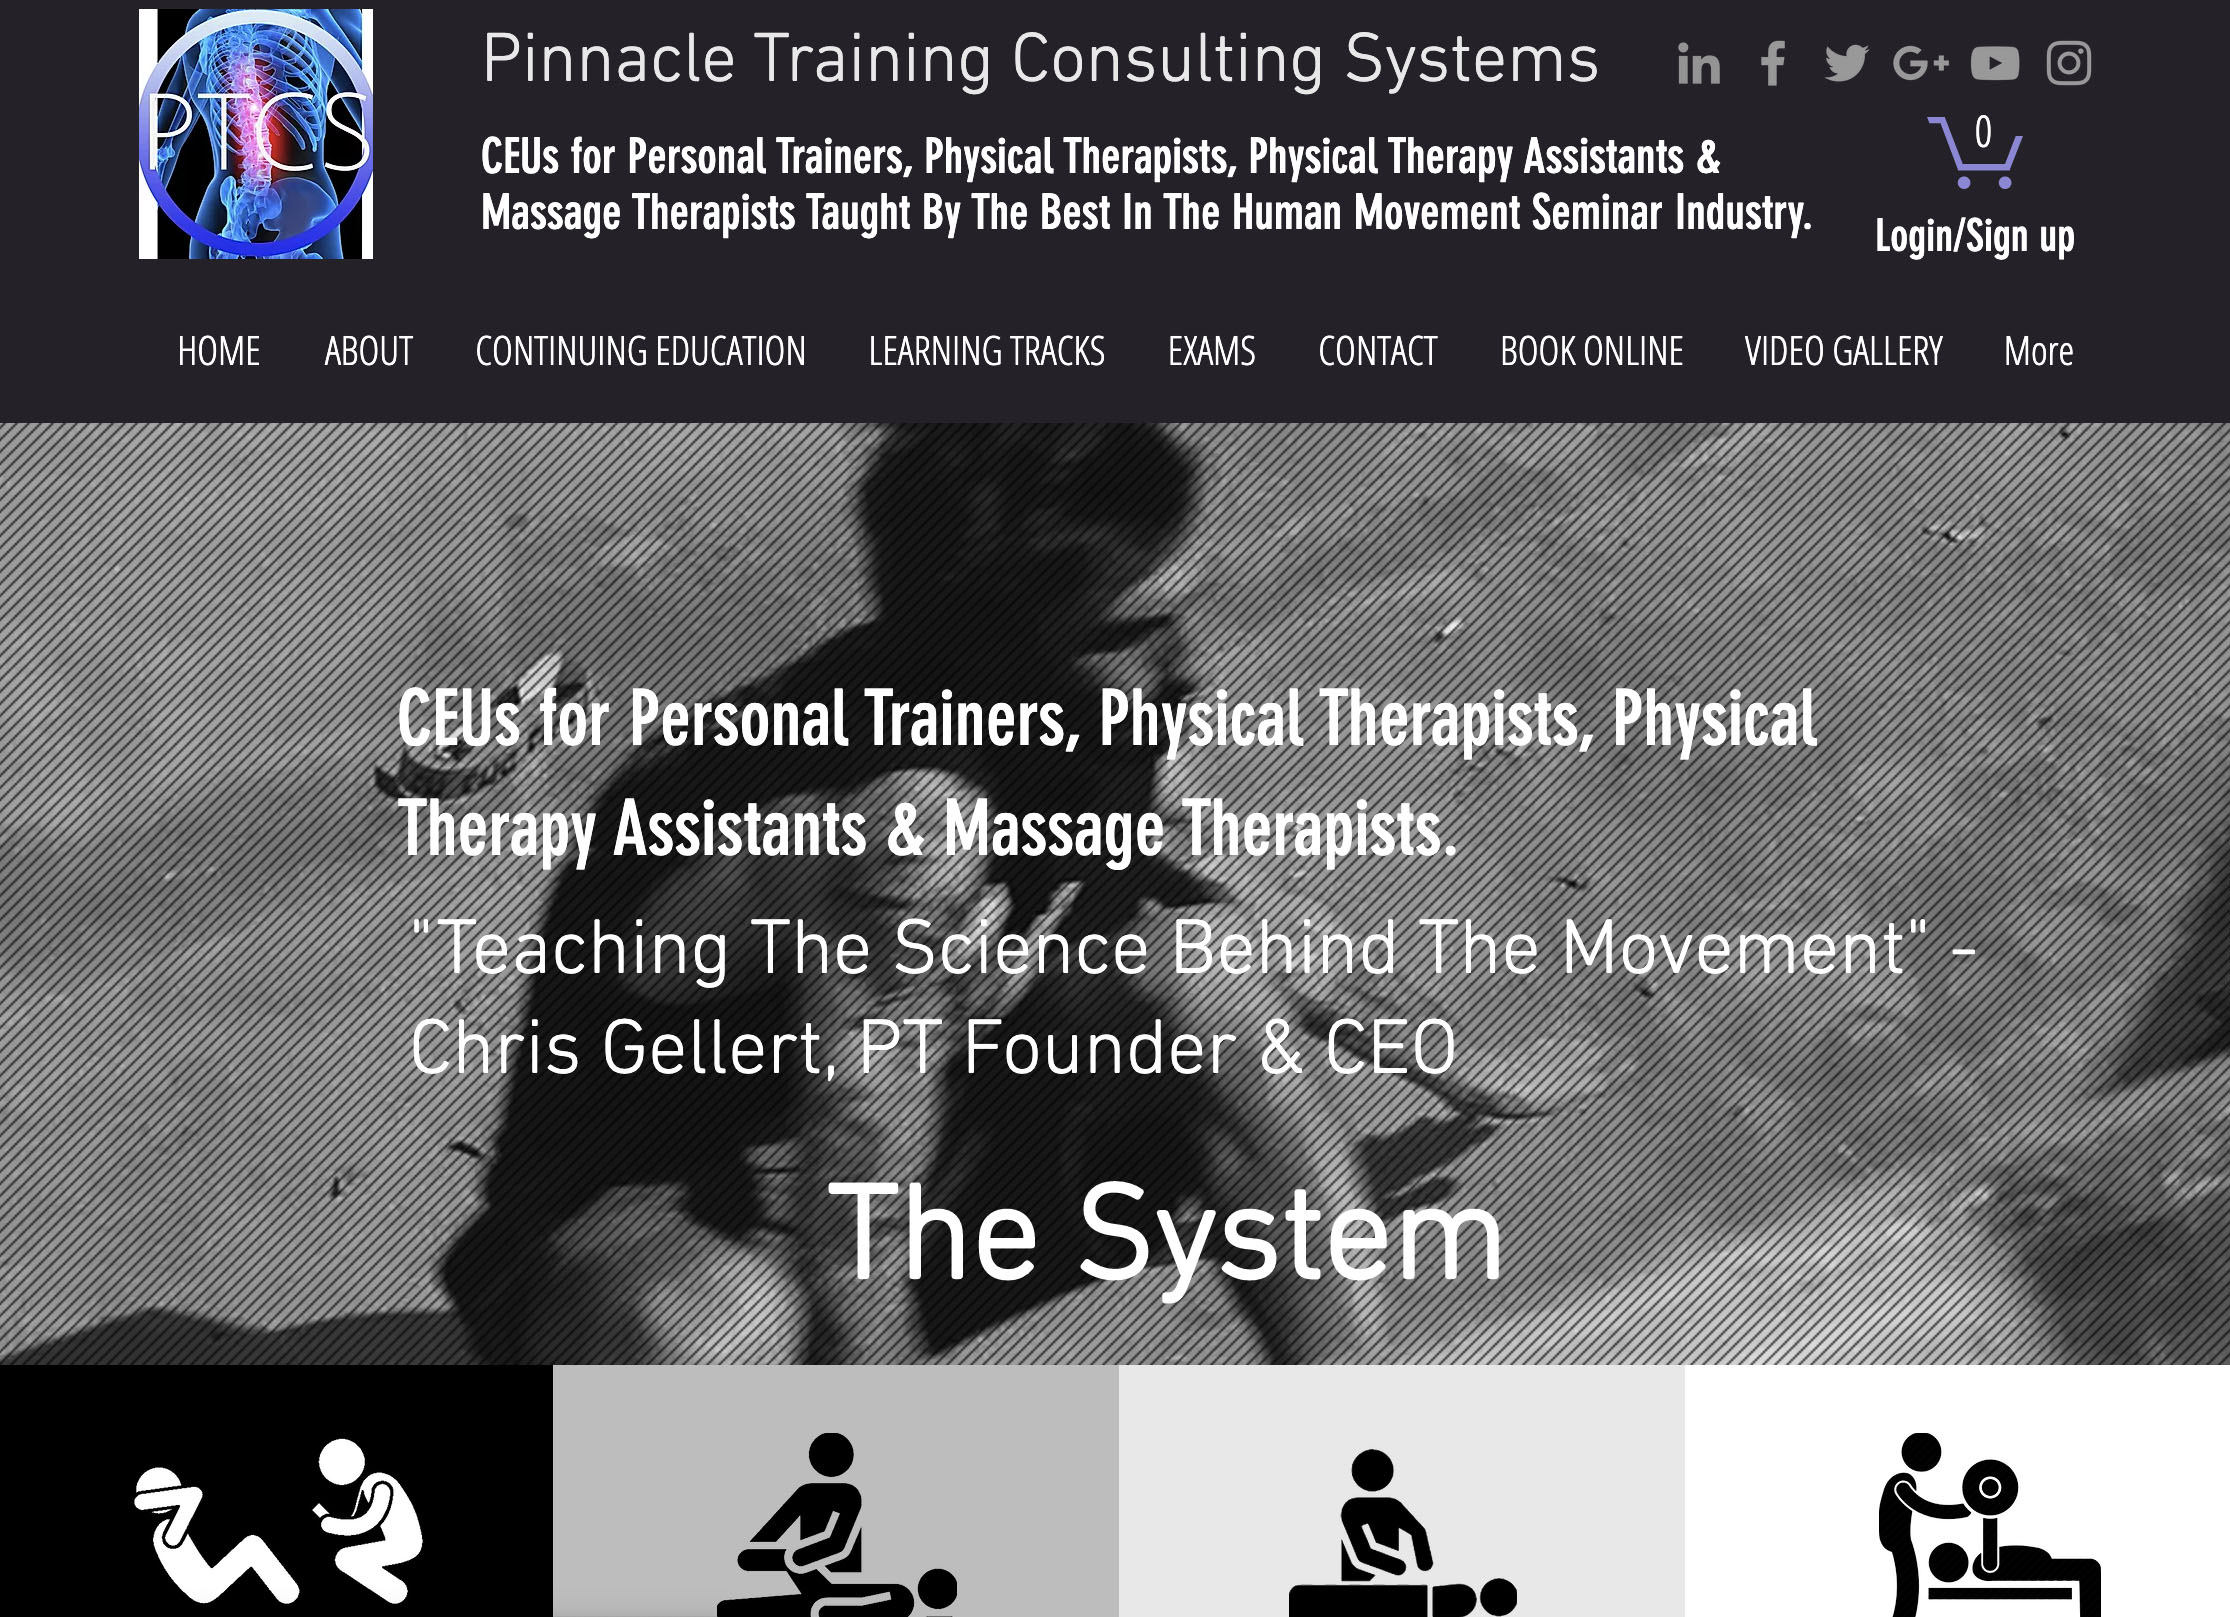 Pinnacle Training Consulting Systems